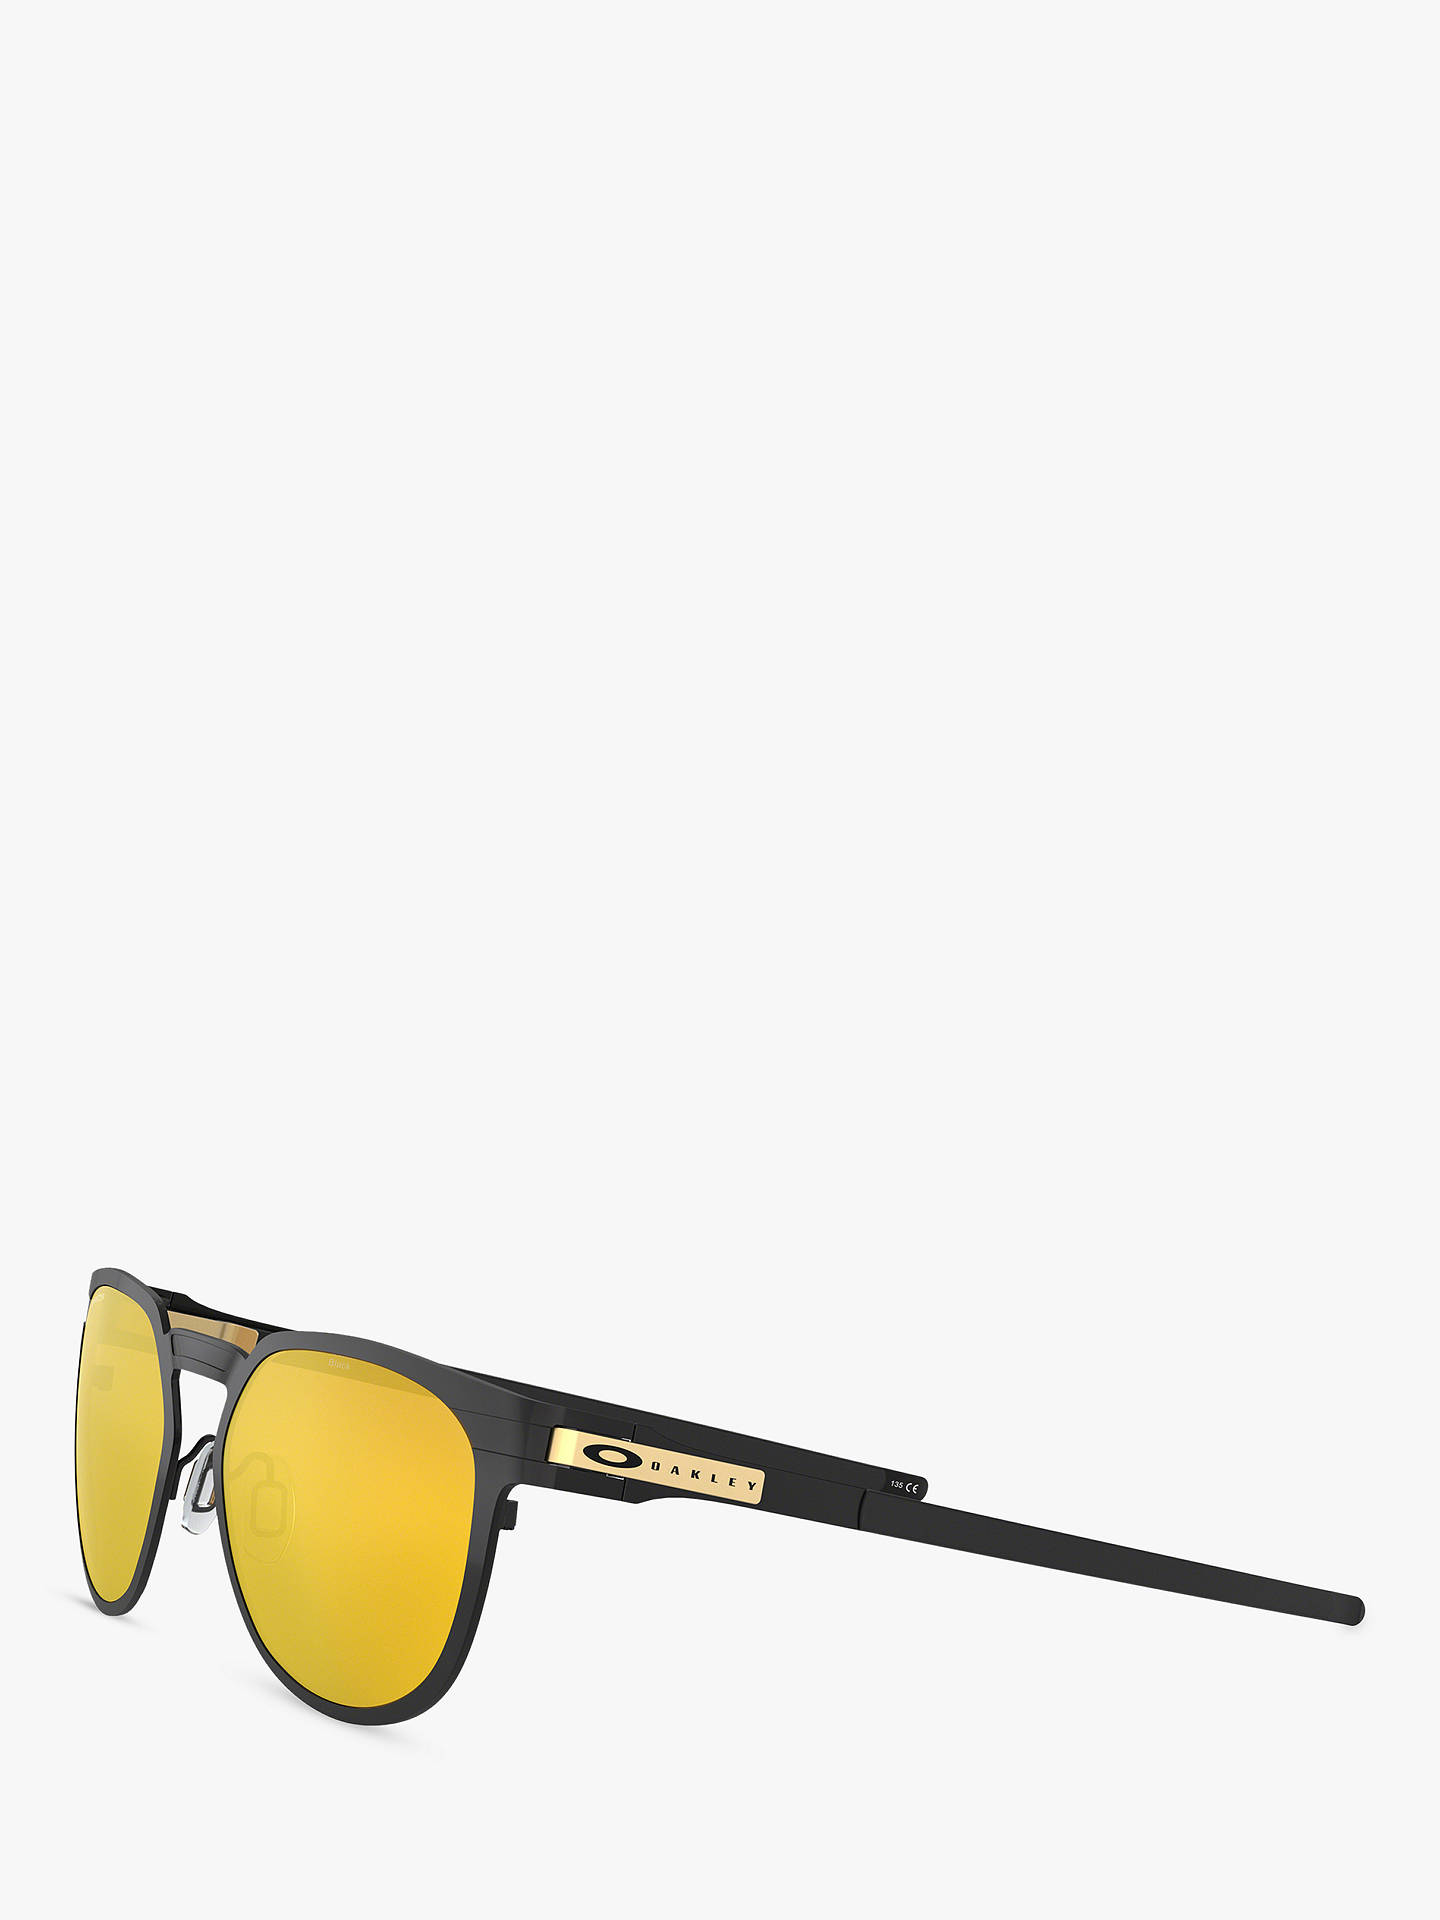 Buy Oakley OO4137 Unisex Diecutter Polarised Oval Sunglasses, Black/Yellow Online at johnlewis.com